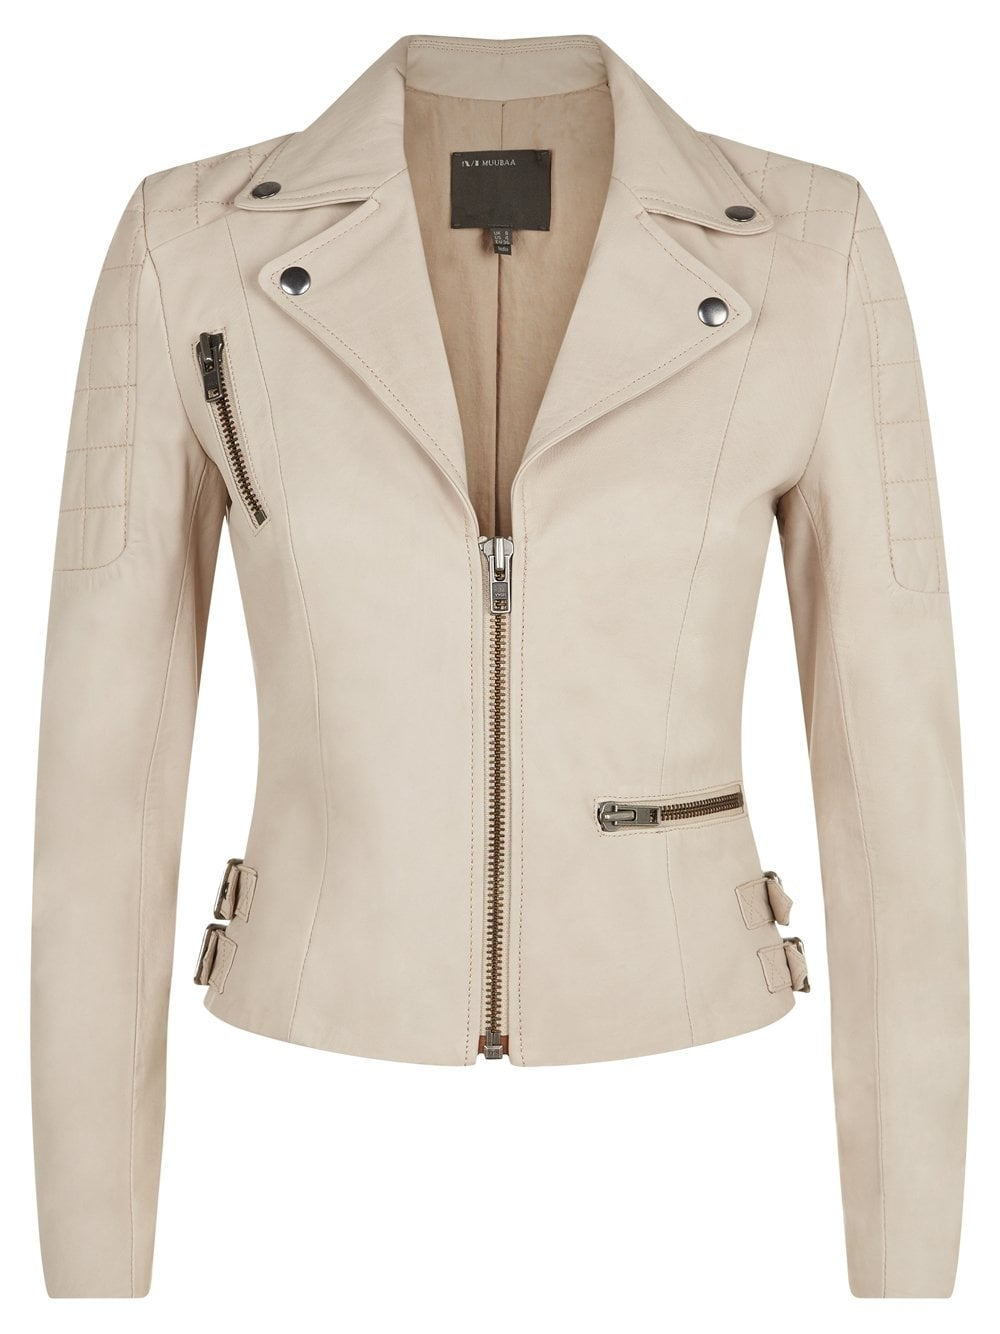 Shop our Collection of Women's Tan/Beige Jackets at atrociouslf.gq for the Latest Designer Brands & Styles. FREE SHIPPING AVAILABLE! Macy's Presents: The Edit- A curated mix of fashion and inspiration Check It Out. Style & Co Faux-Leather Moto Jacket, Created for Macy's.